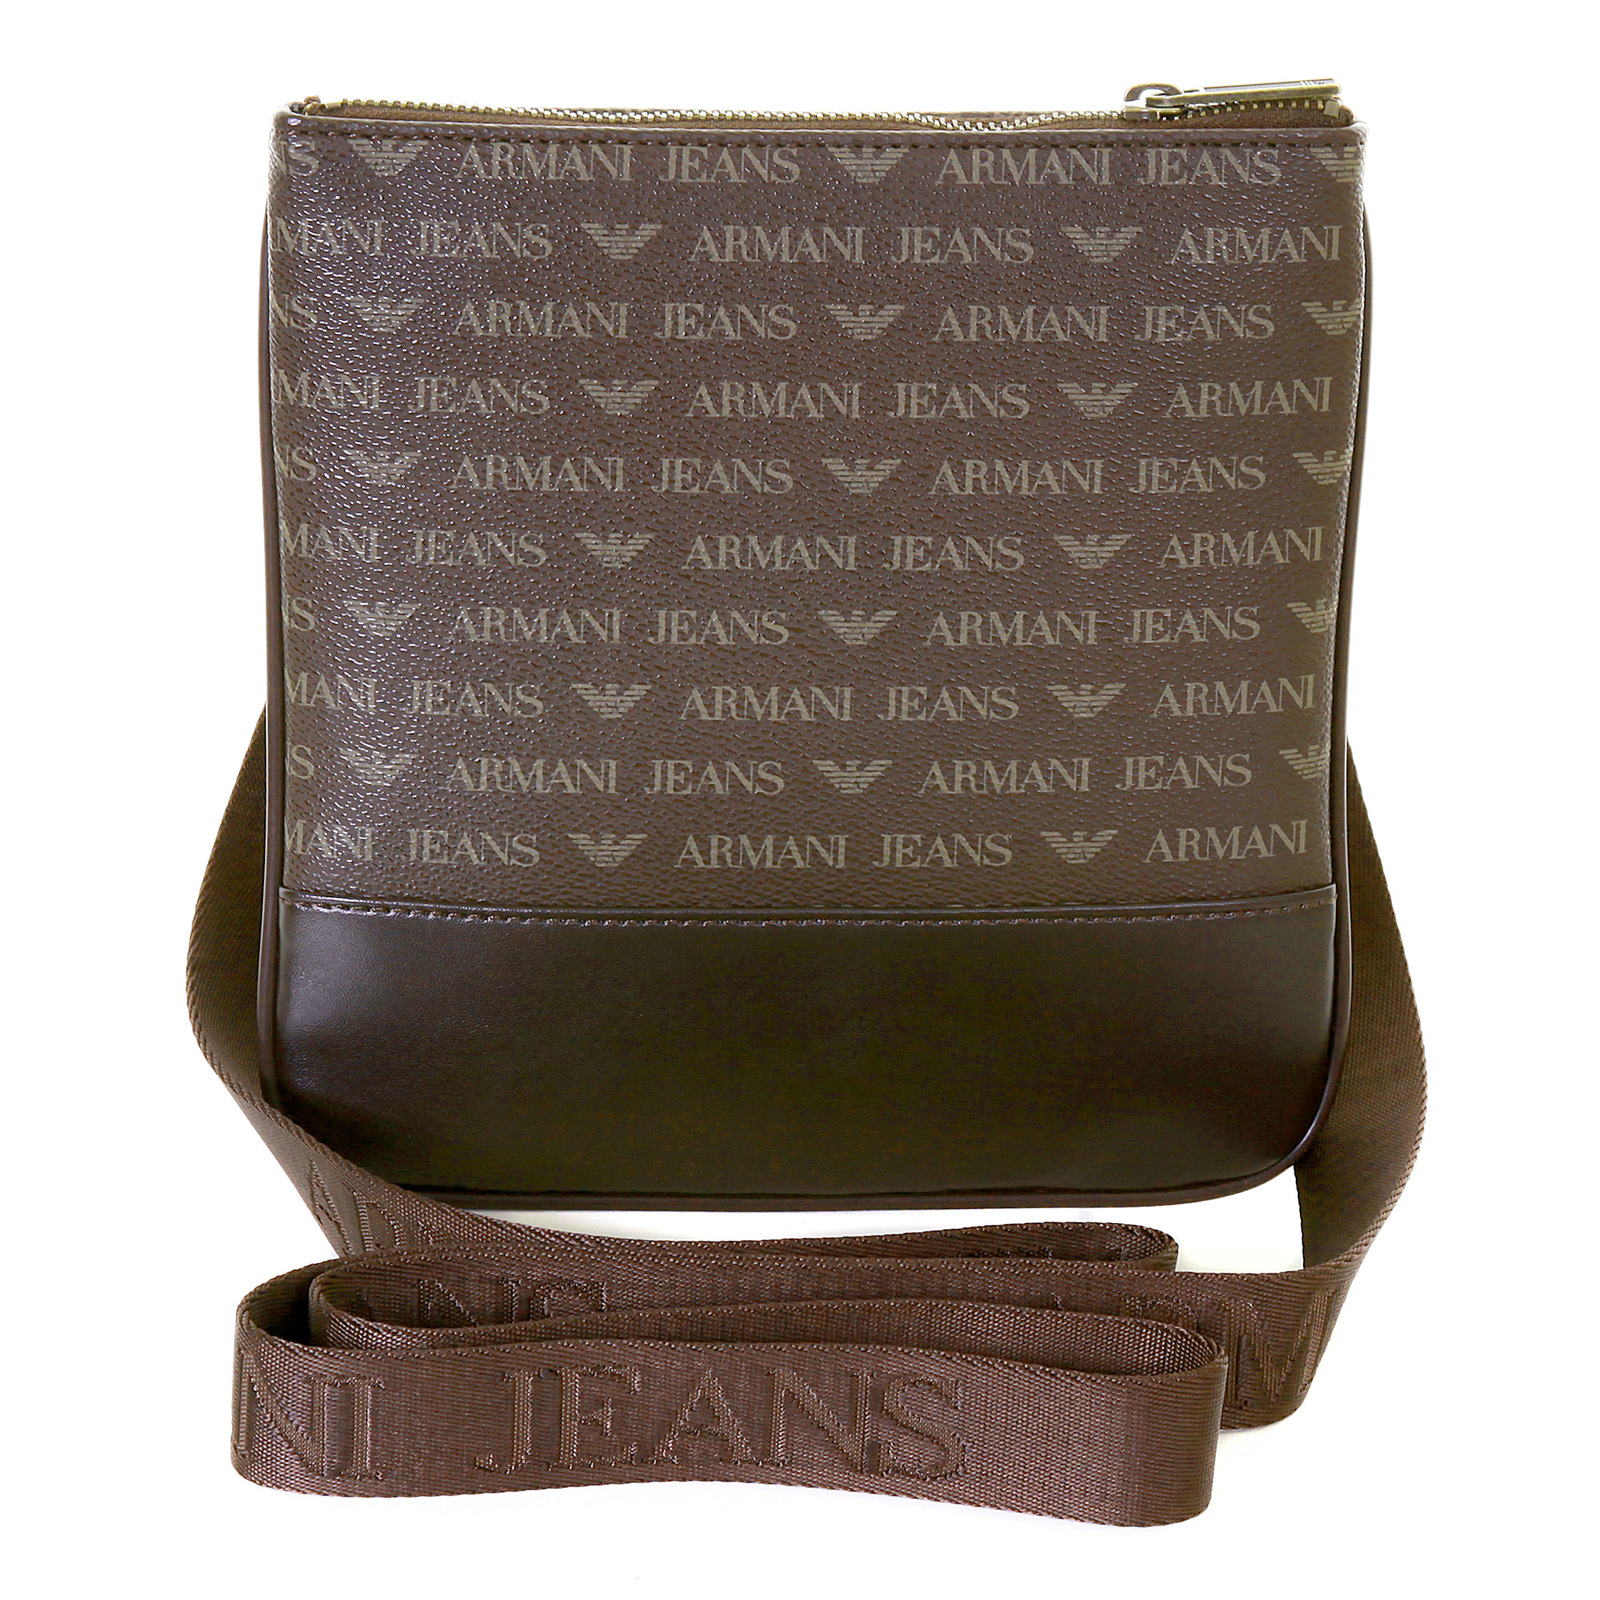 Armani Jeans mens brown logo small messenger bag AJM2472 at Togged Clothing 342860af90c0b